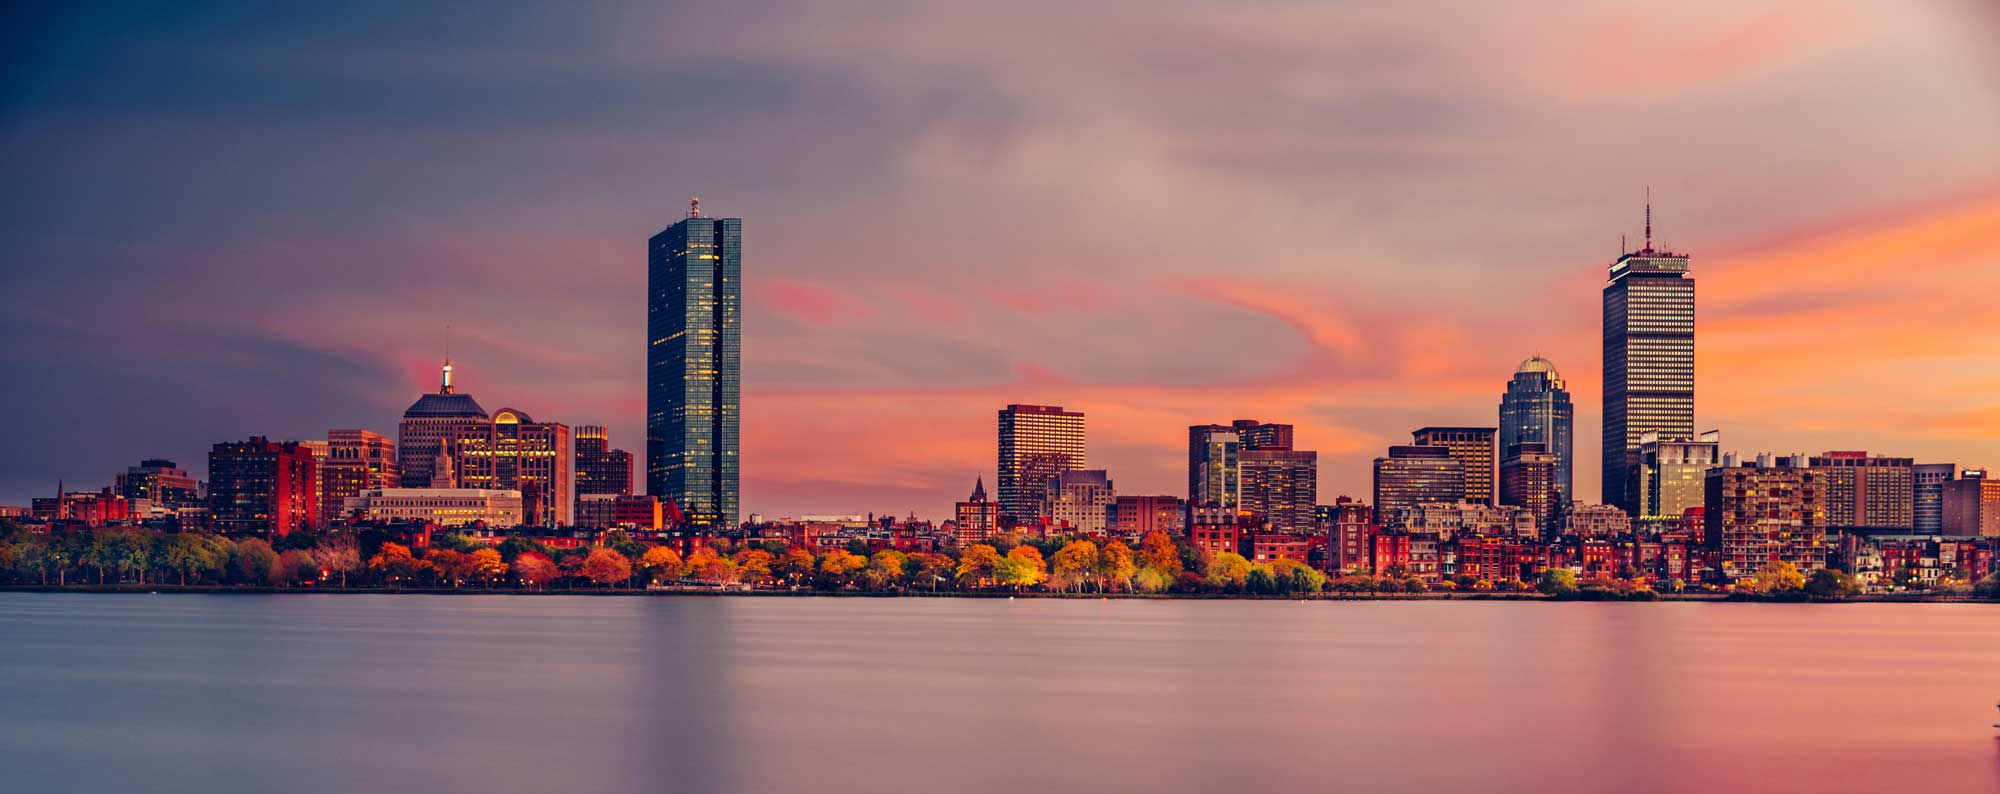 Conference In Boston Wednesday November >> Apfm Adfp Mcfm 2019 United Conference Boston November 7 9